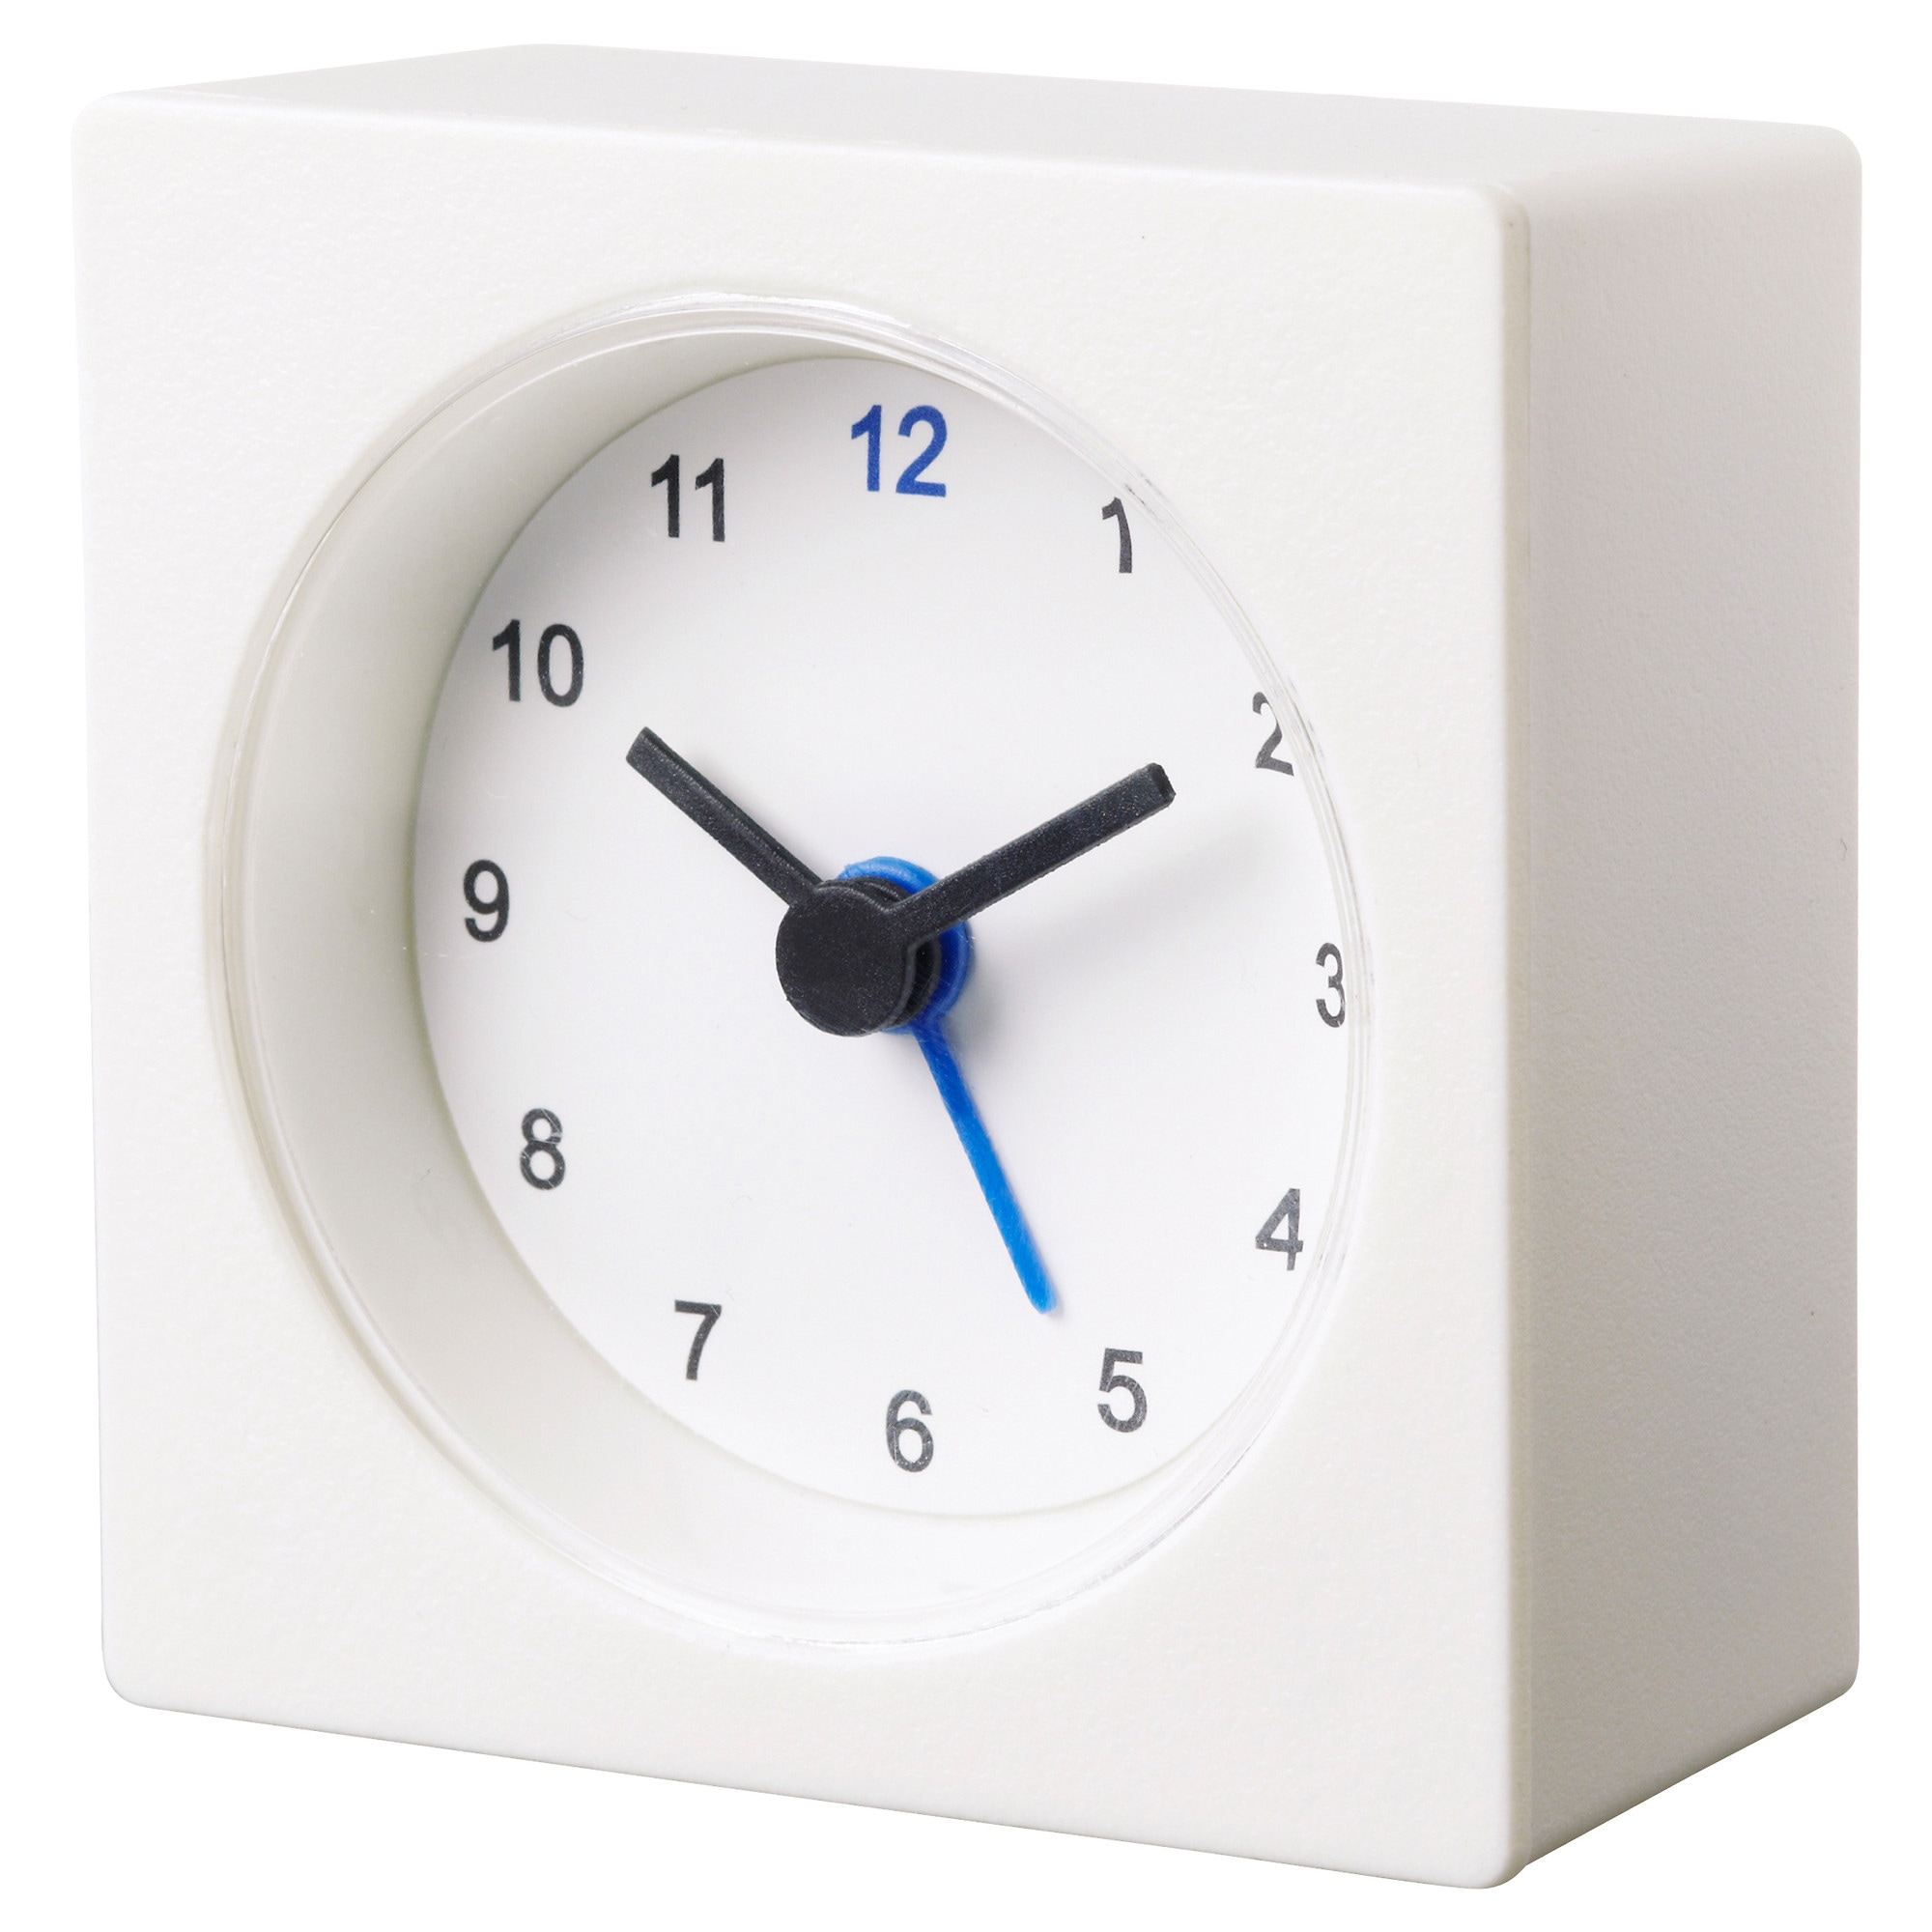 Vckis alarm clock ikea inter ikea systems bv 1999 2017 privacy policy amipublicfo Gallery